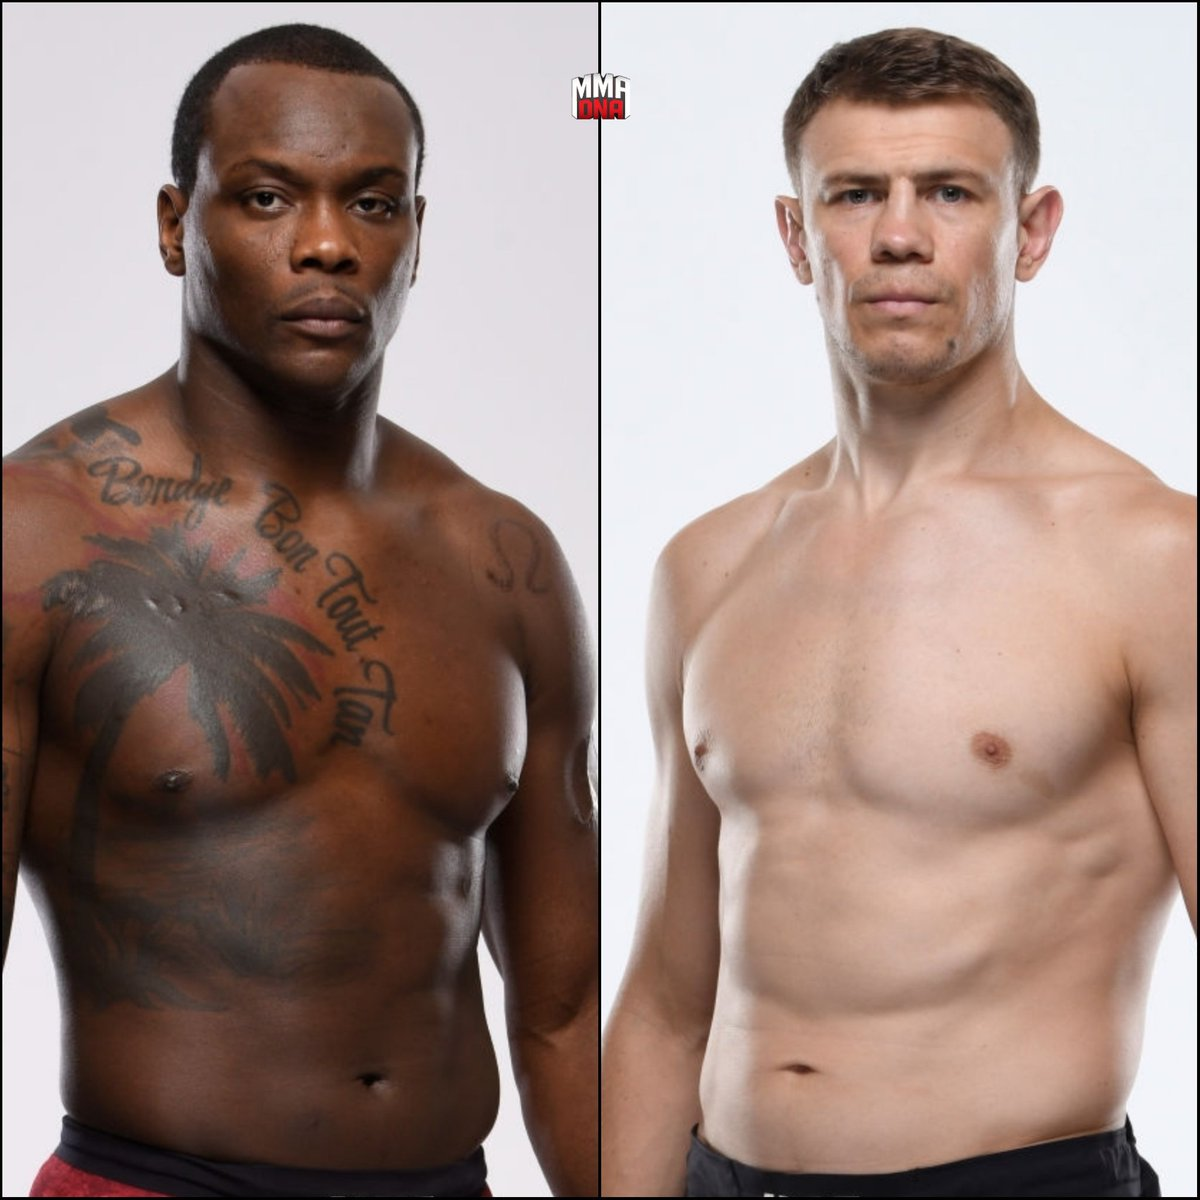 Ovince St.Preux will fight Maxim Grishin at UFC event on June 26th. (per @MMAjunkie) #UFC #MMA #UFCESPN